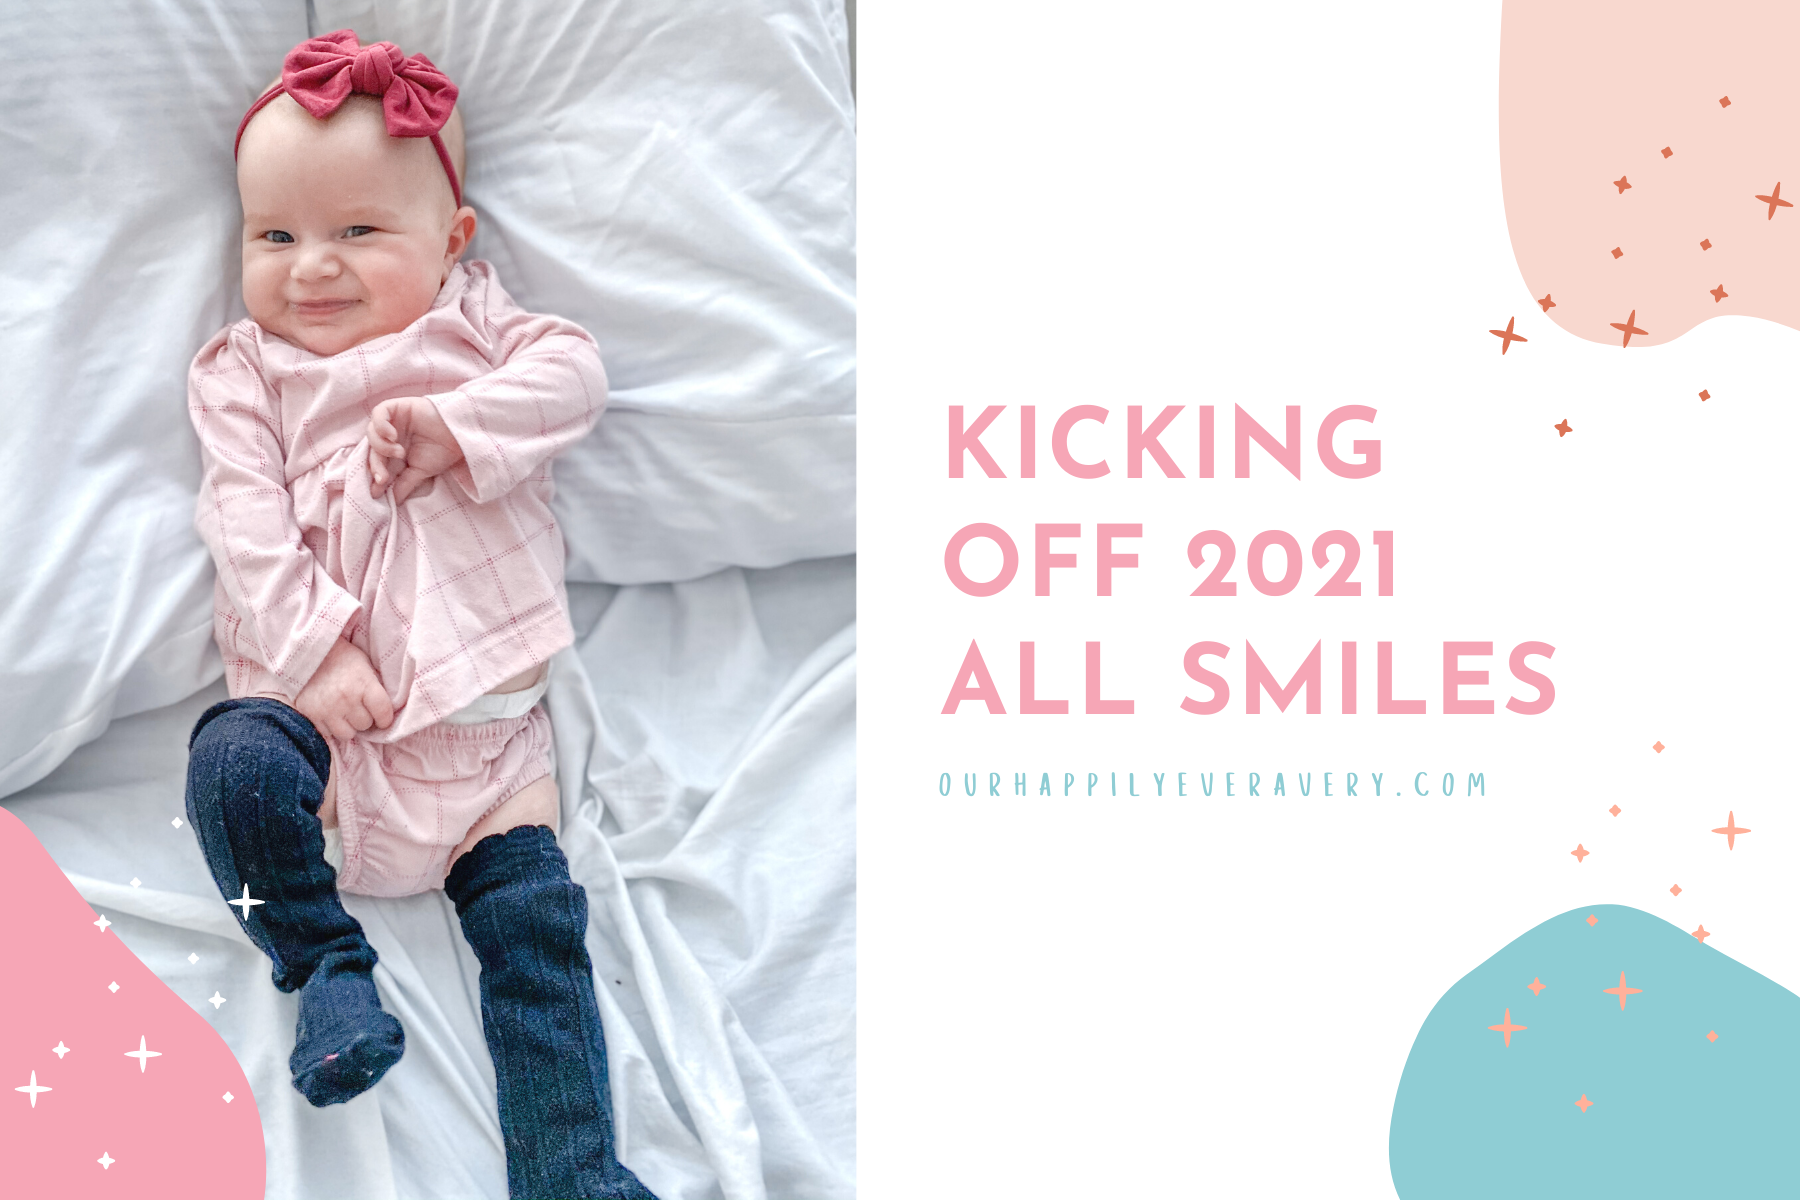 Happily Ever Avery // Kicking Off 2021 All Smiles